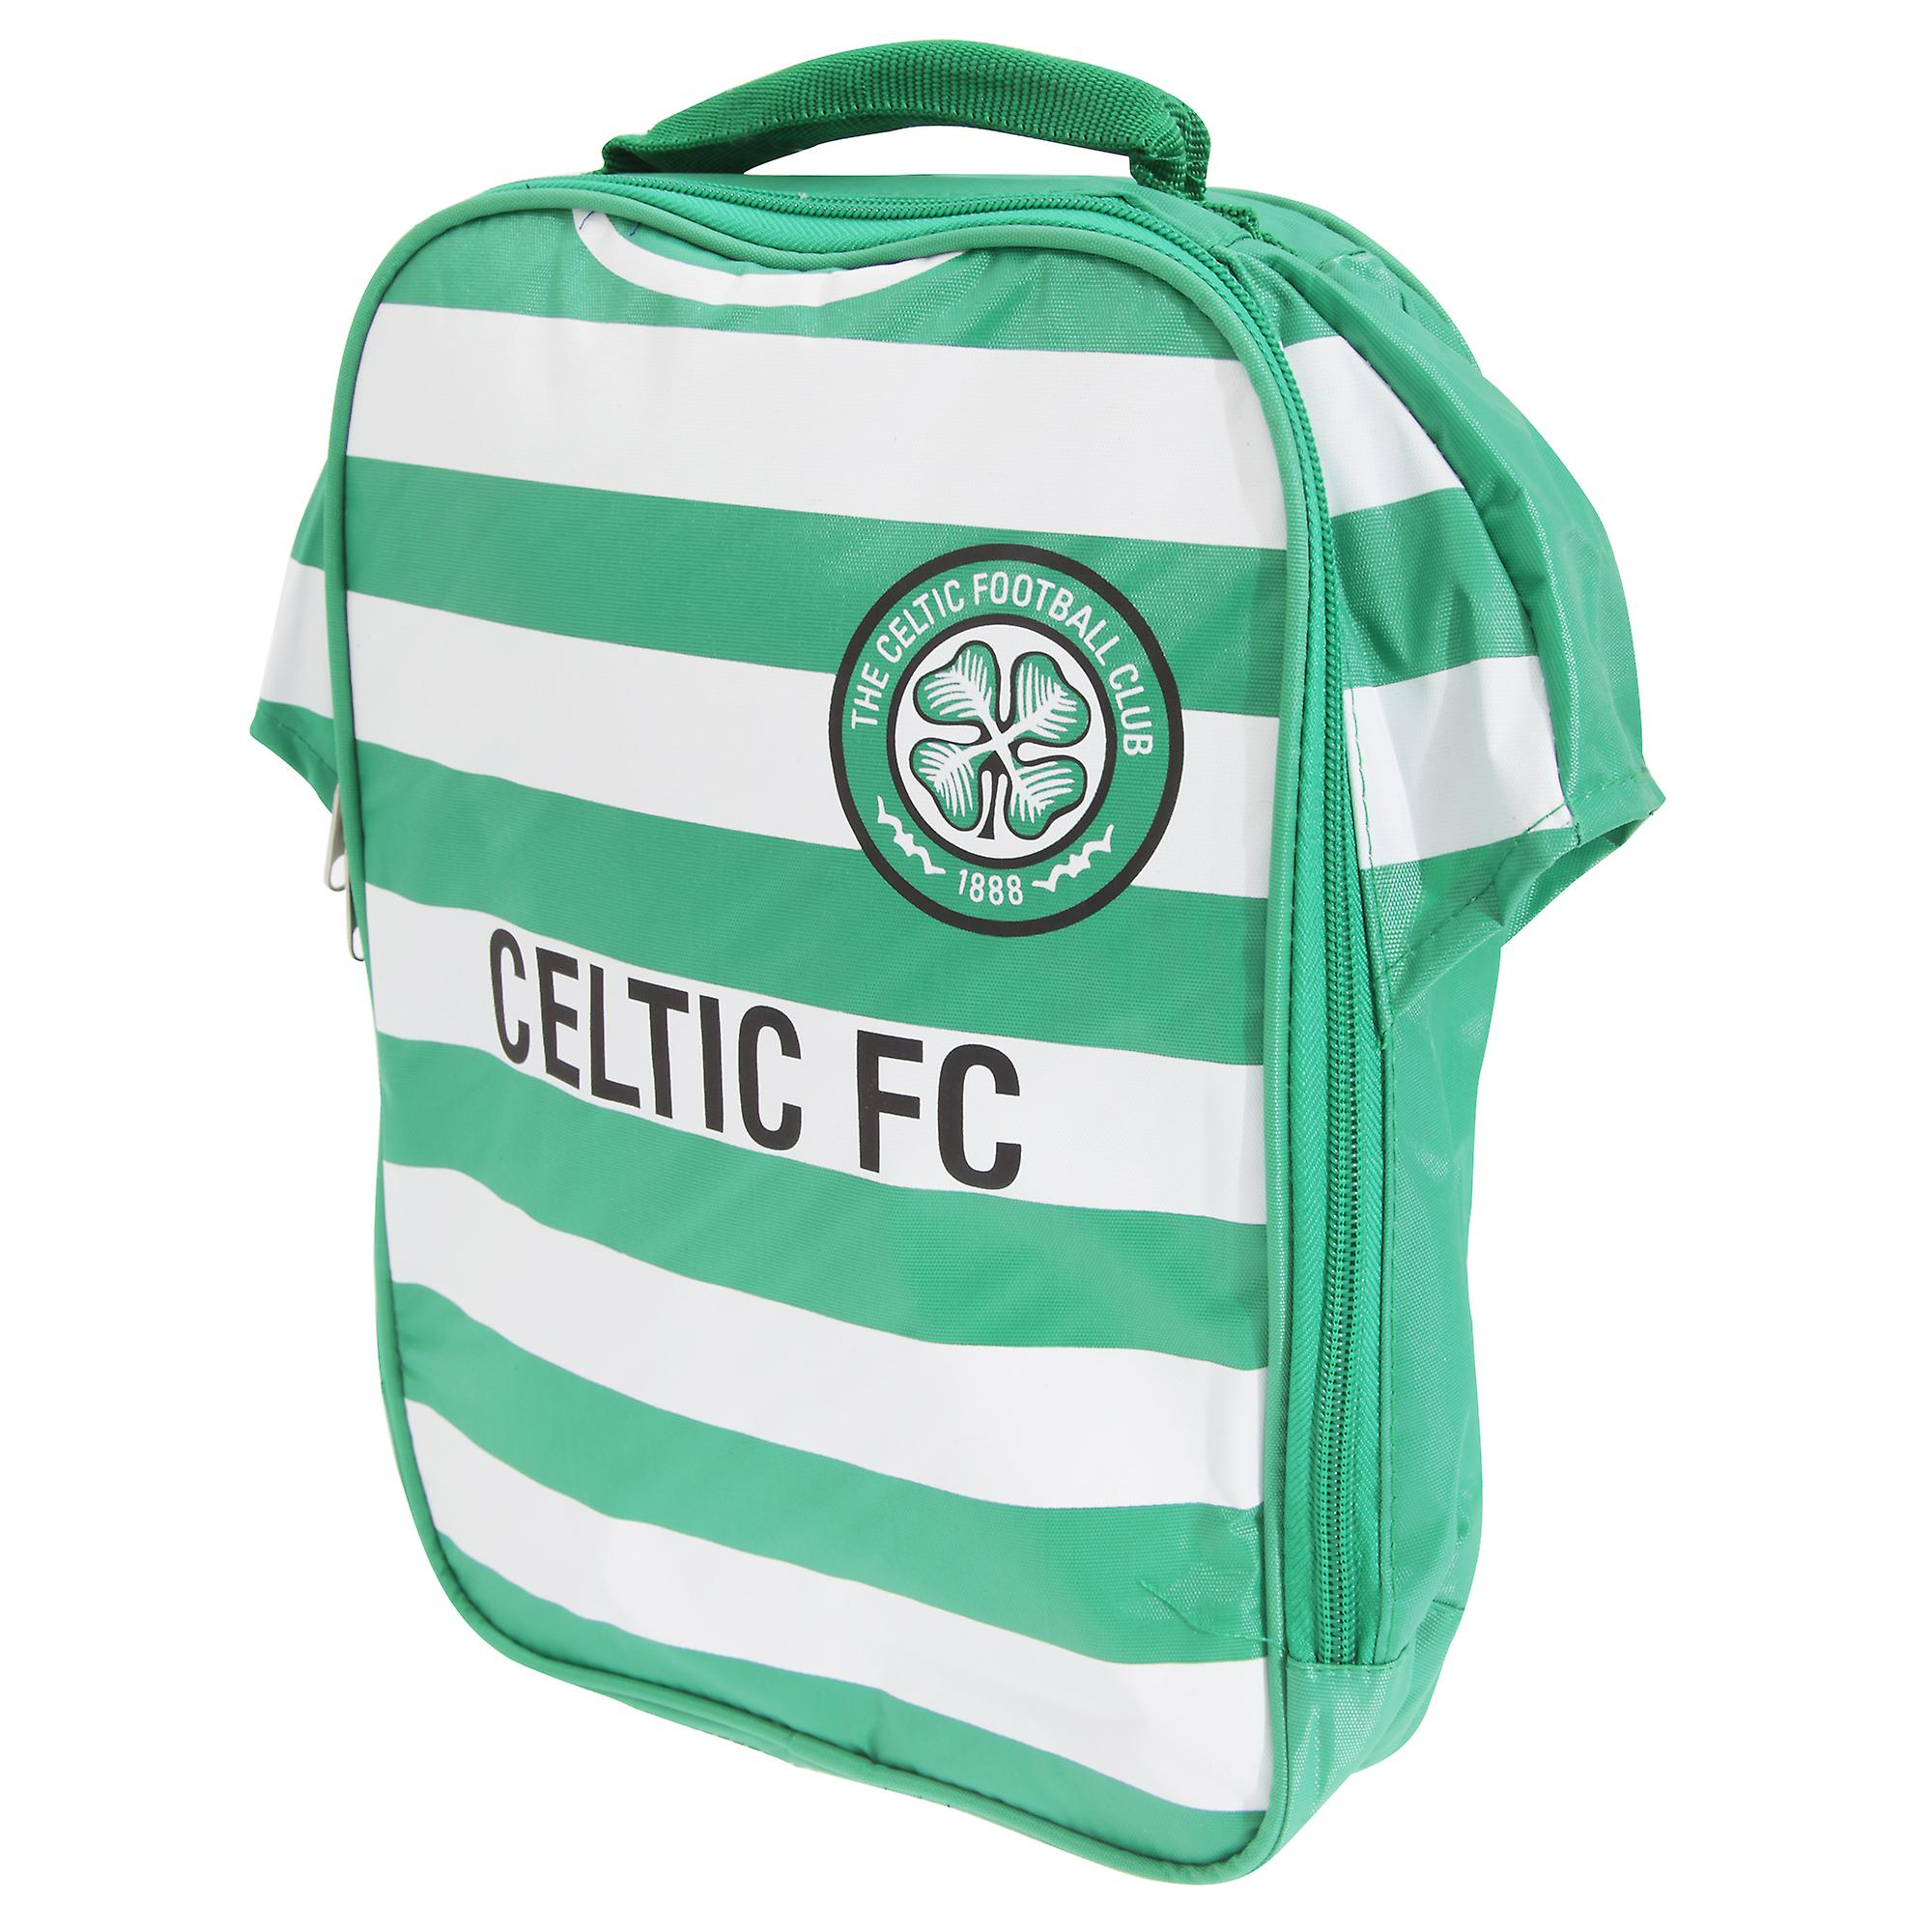 Celtic FC Official Insulated Football Shirt Lunch Bag/Cooler